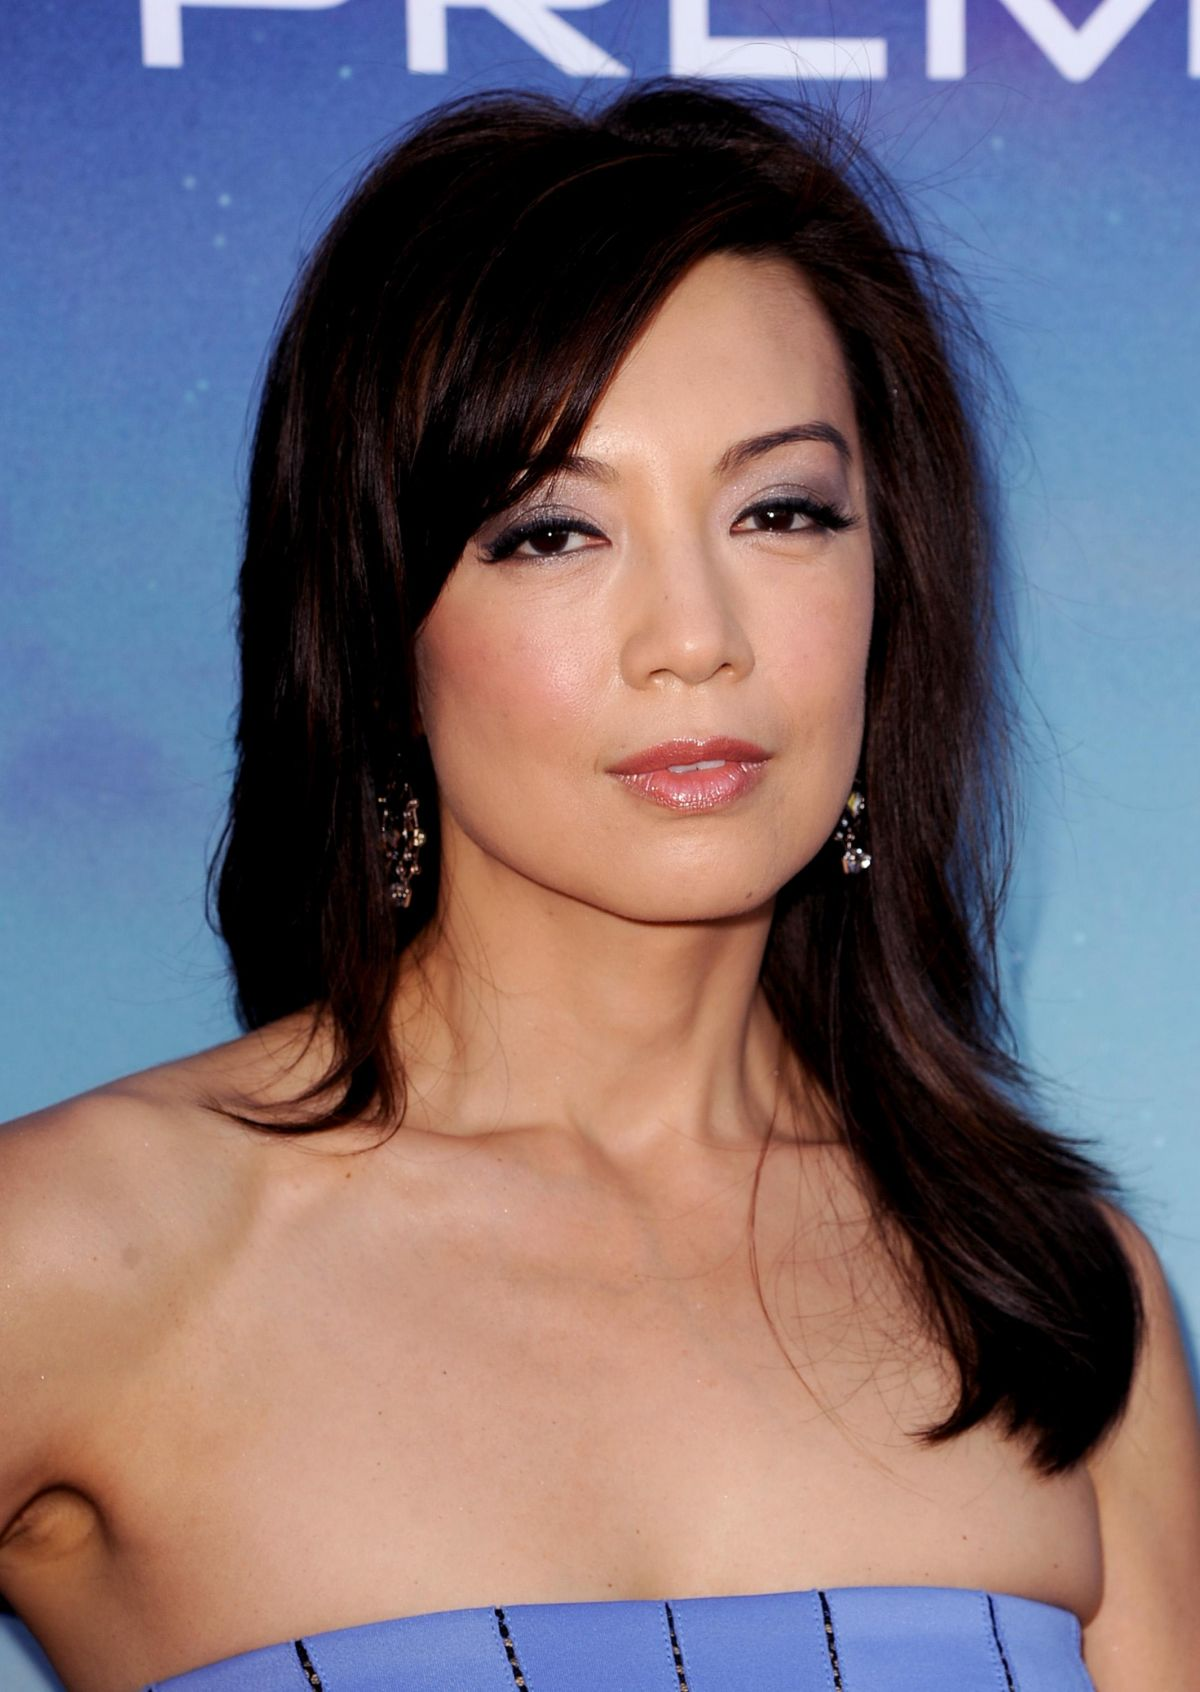 MING-NA WEN at Guardians of the Galaxy premiere www.scifiempire.net